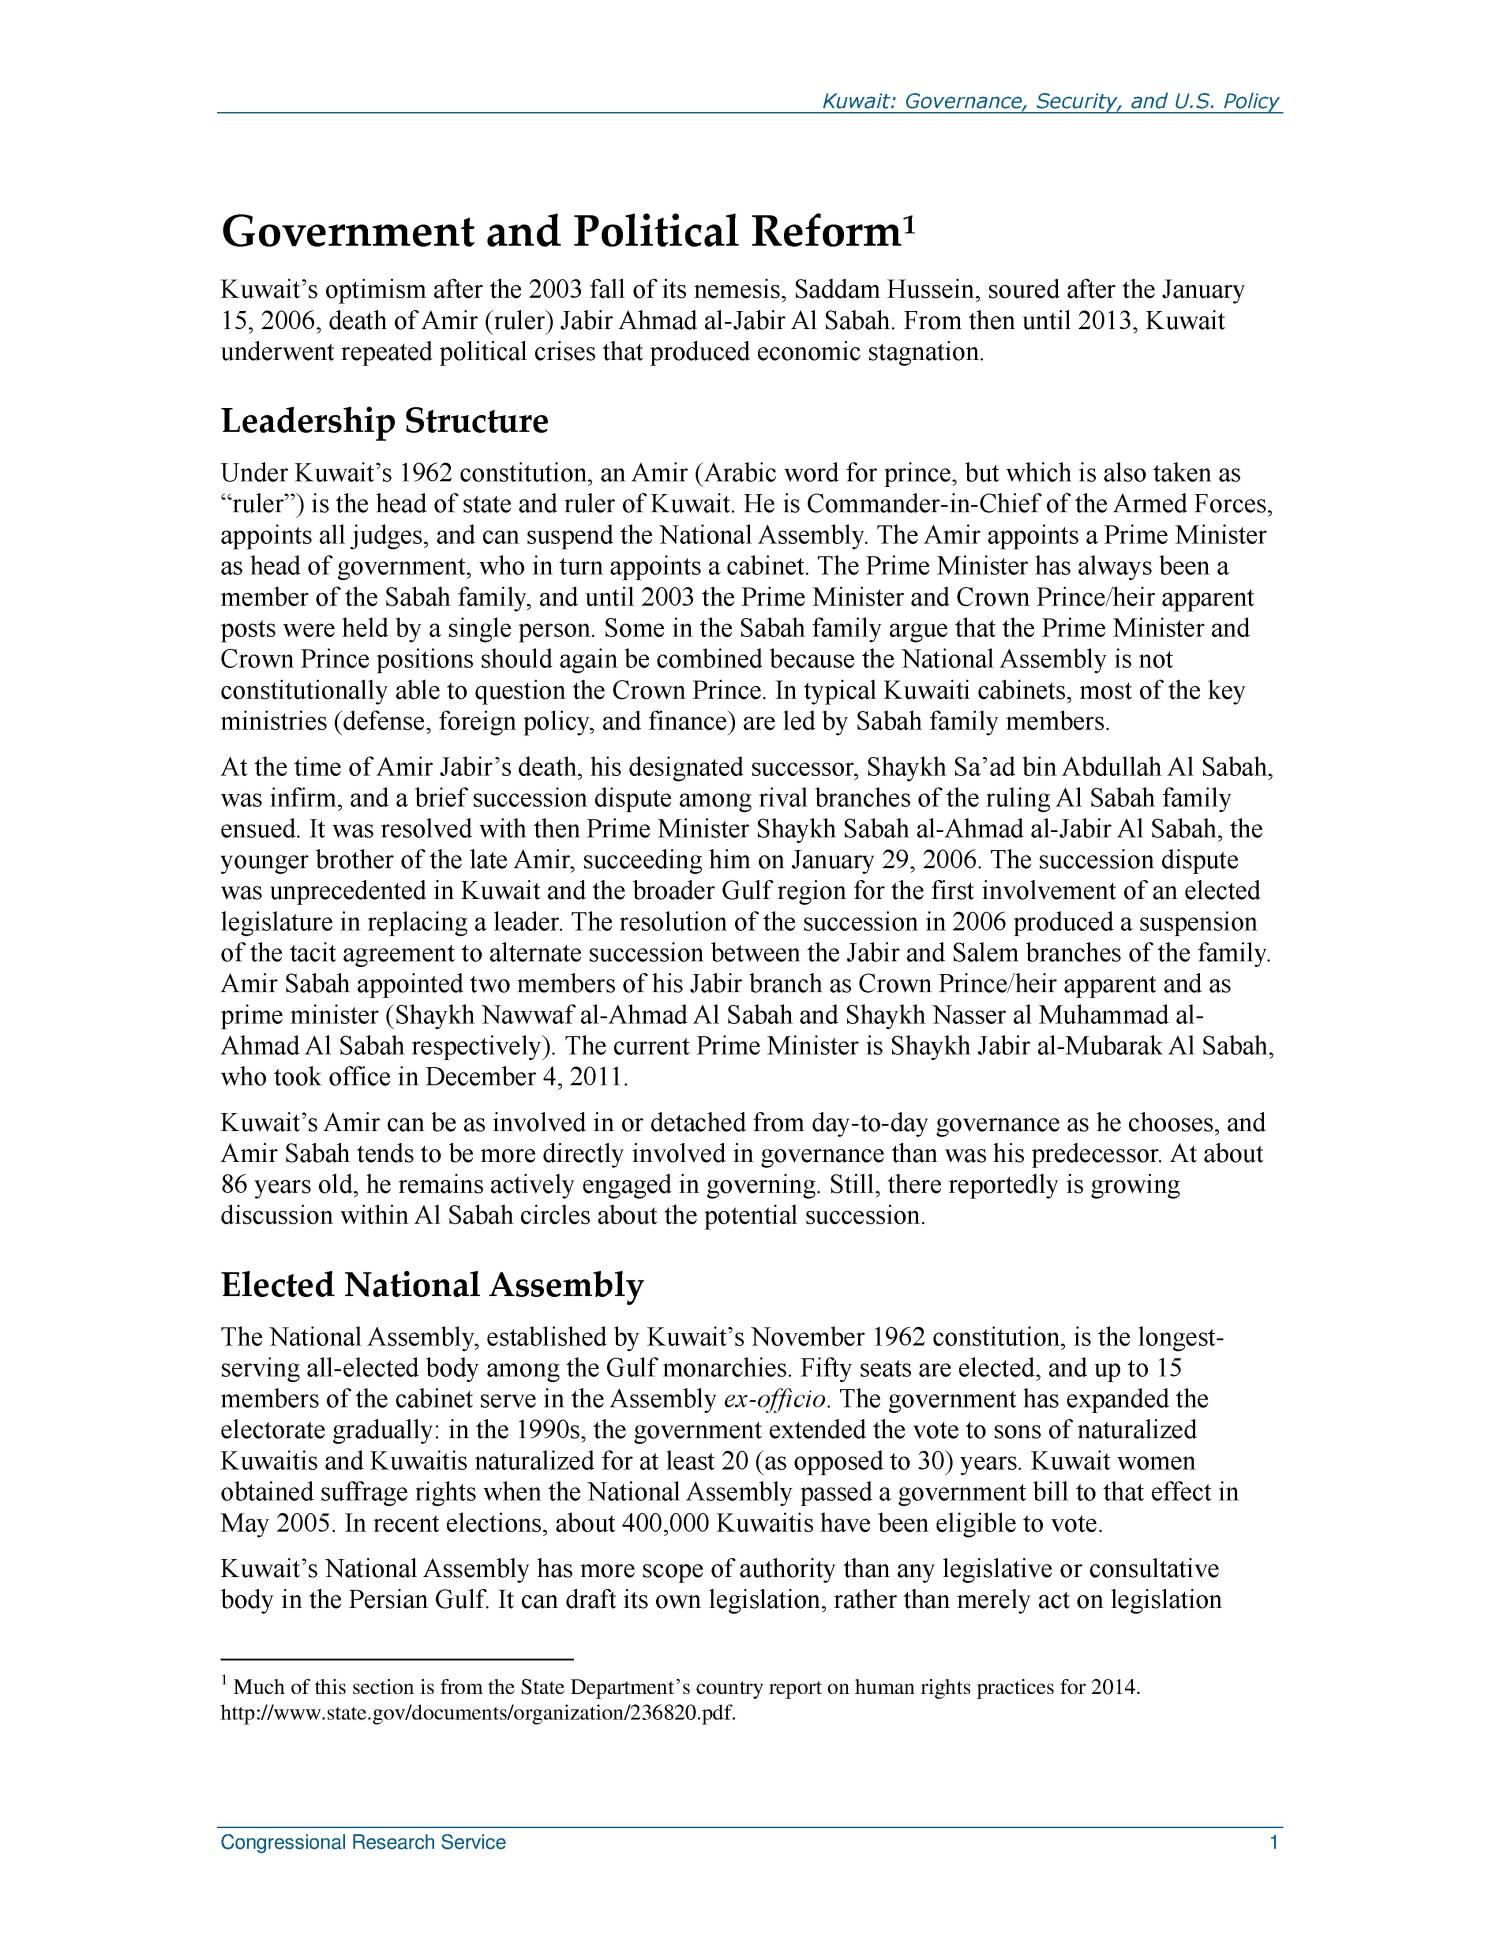 Kuwait: Governance, Security, and U.S. Policy                                                                                                      [Sequence #]: 4 of 26